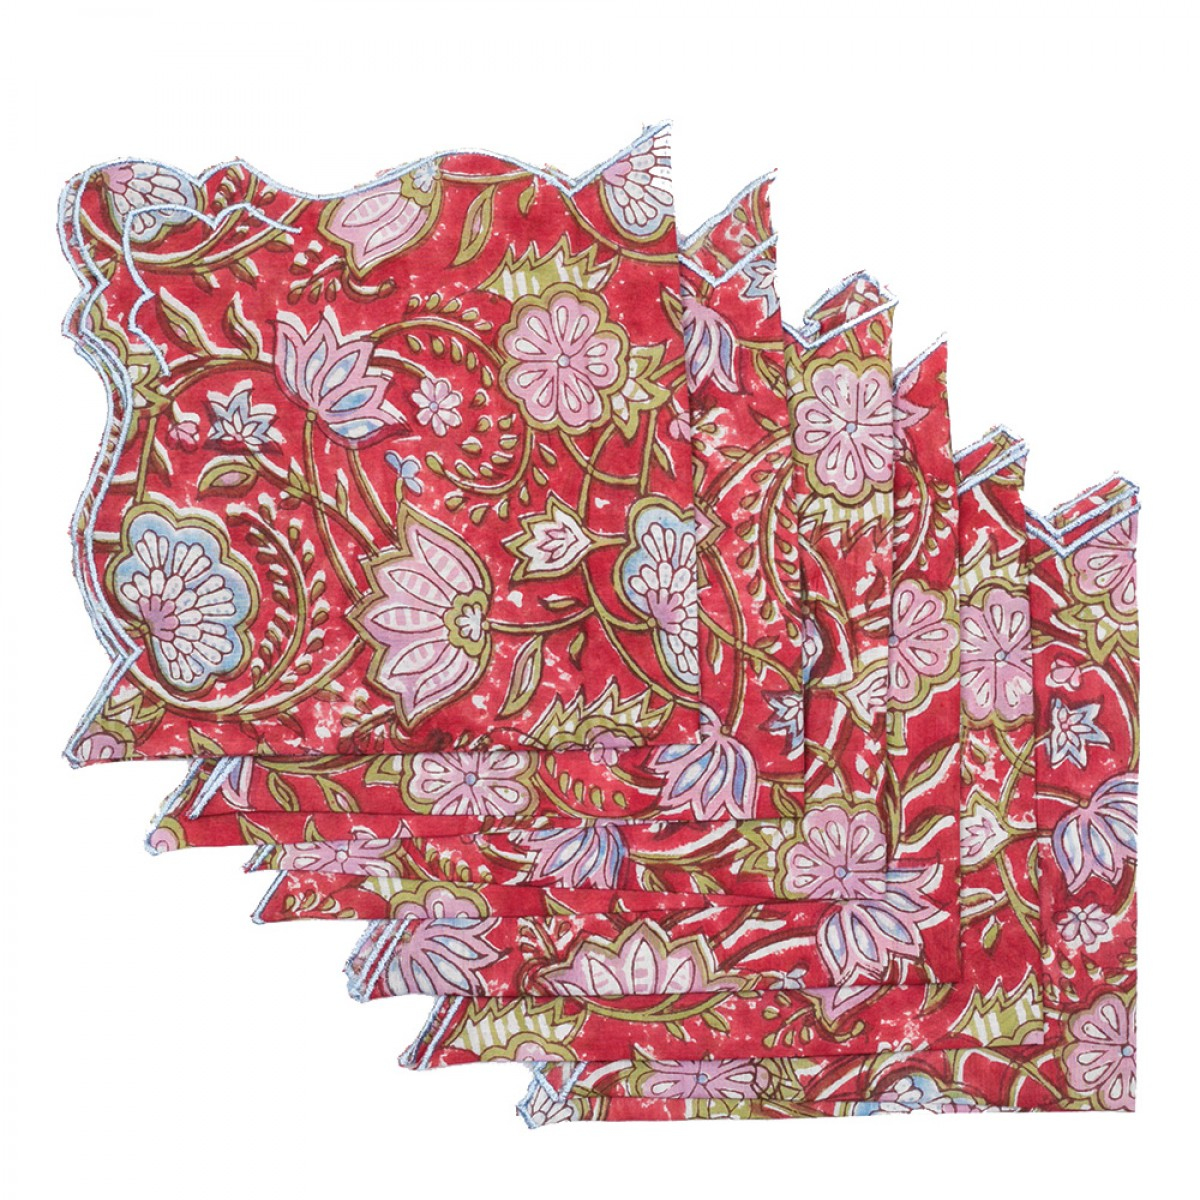 Cotton Scallop Embroidered Printed Napkin - Red (Set of 6)